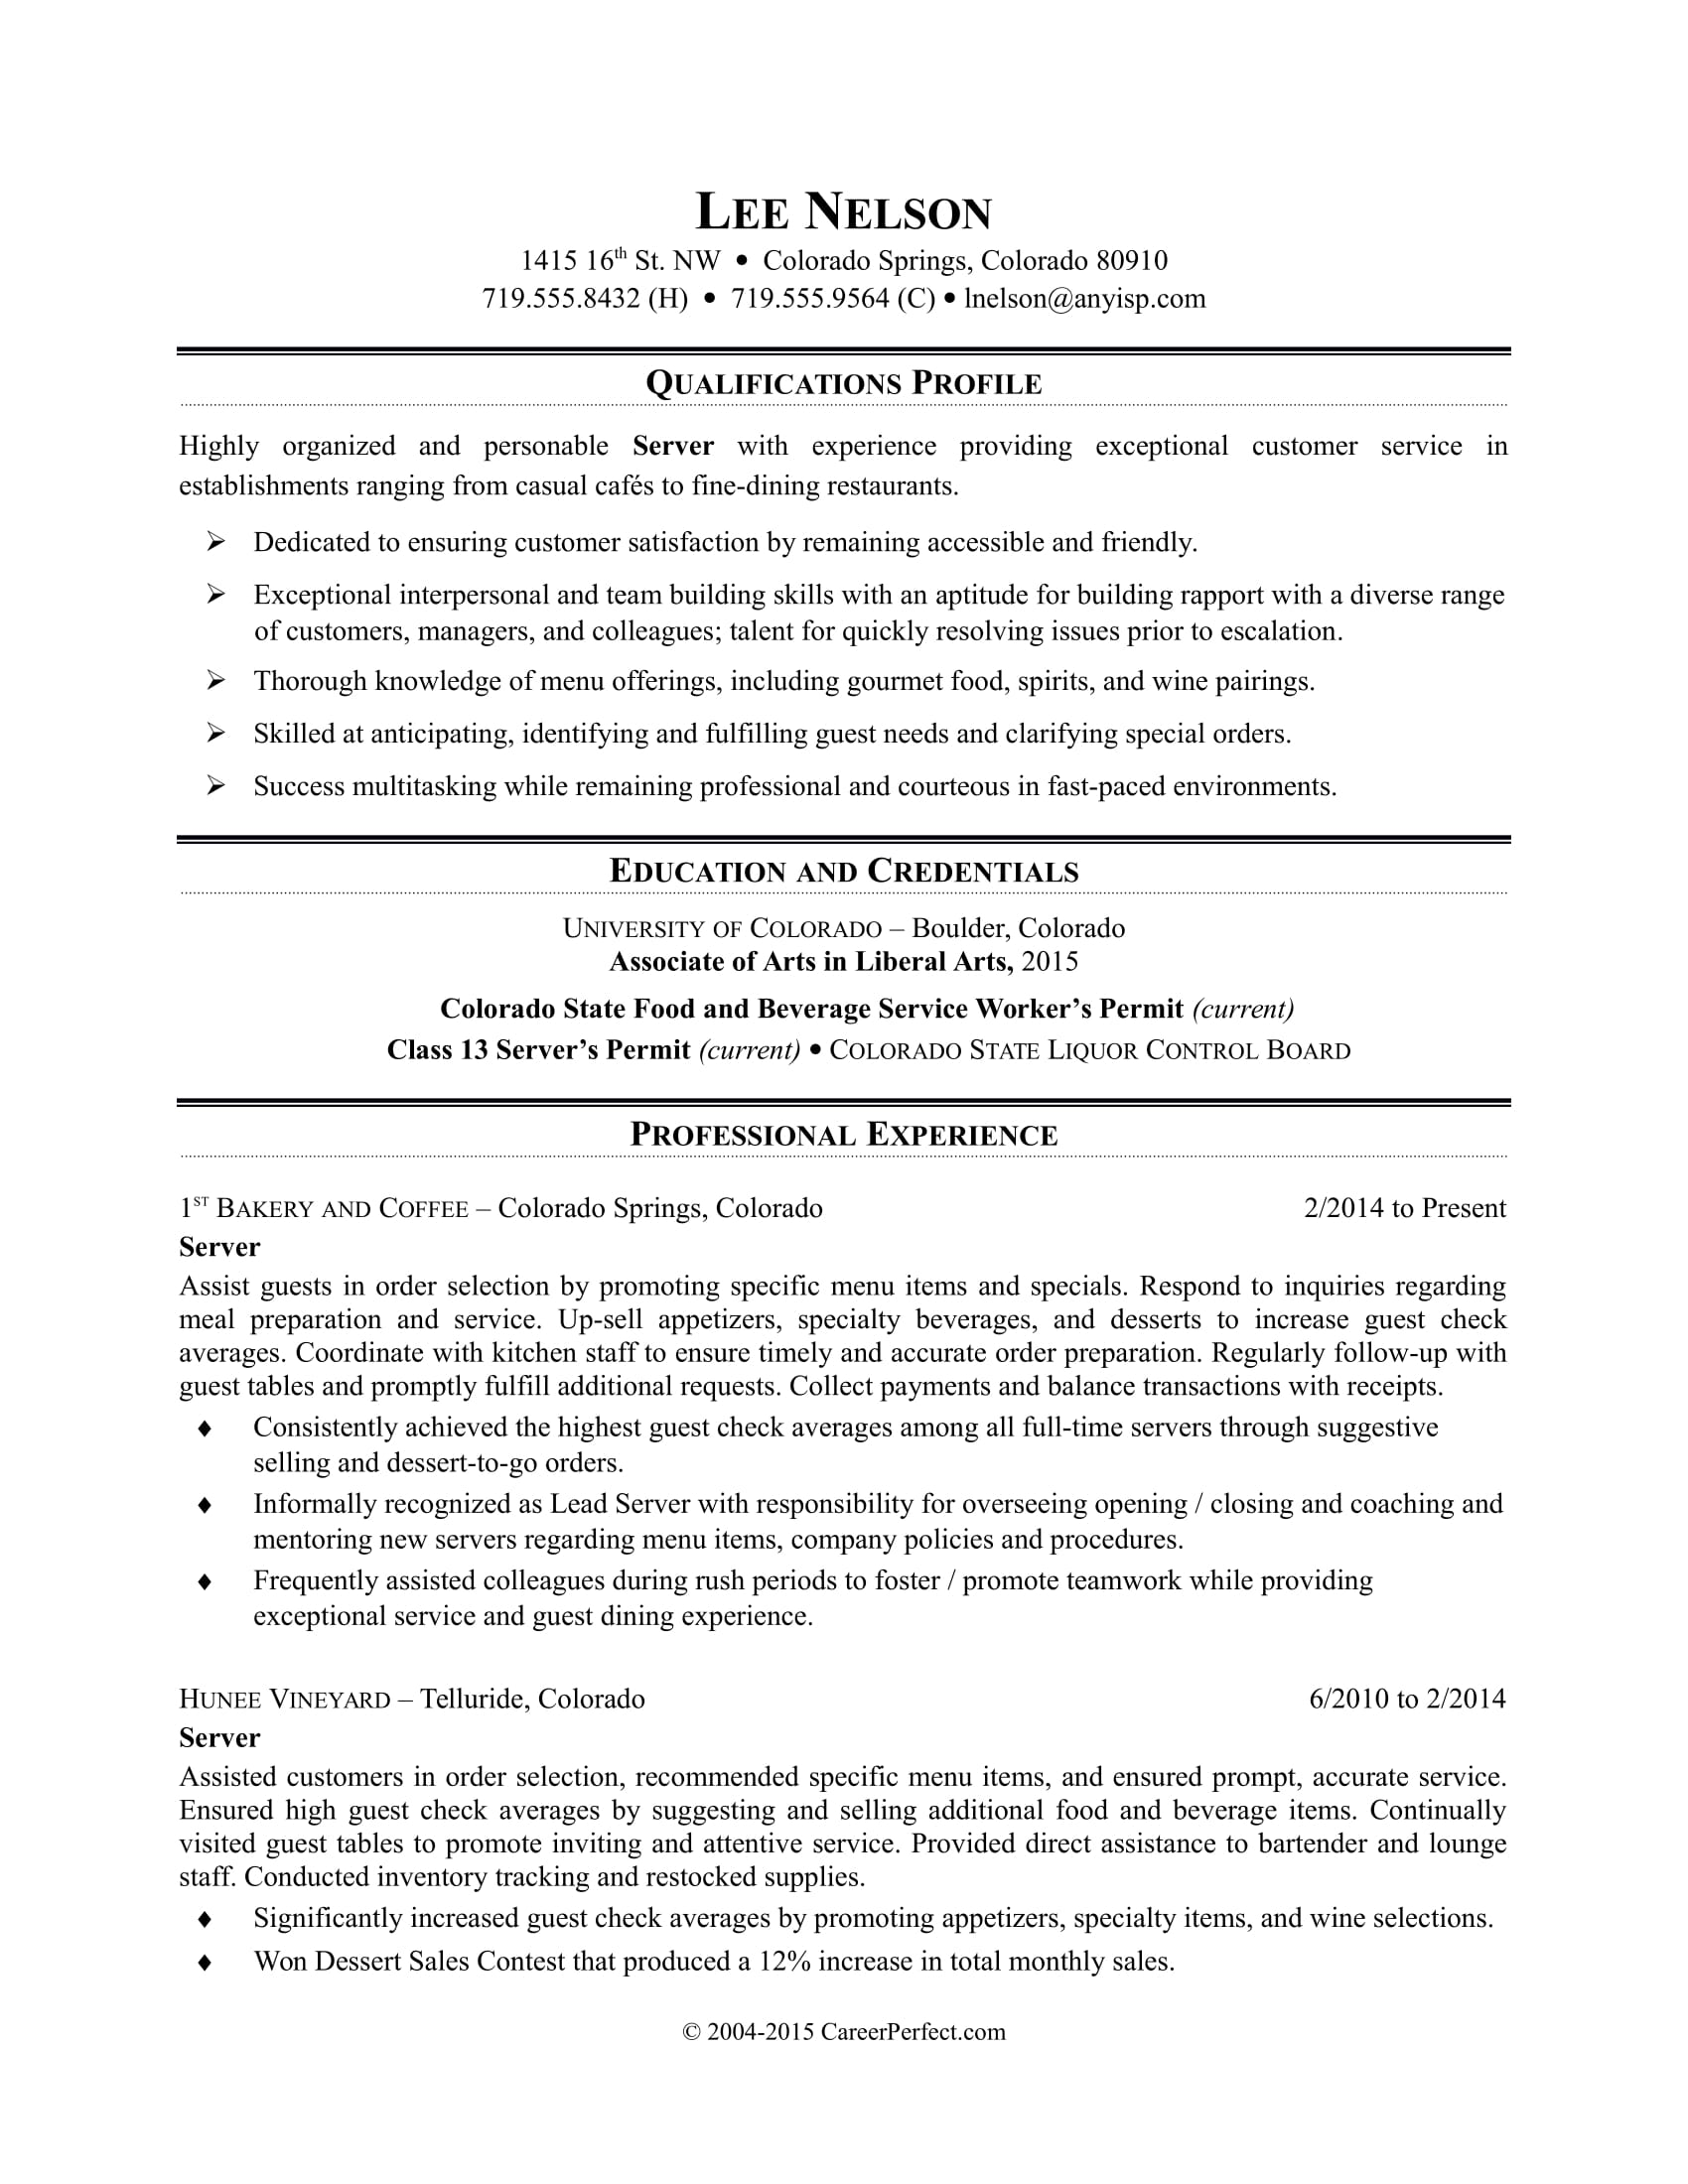 High Quality Sample Resume For A Restaurant Server  Resumes For Servers